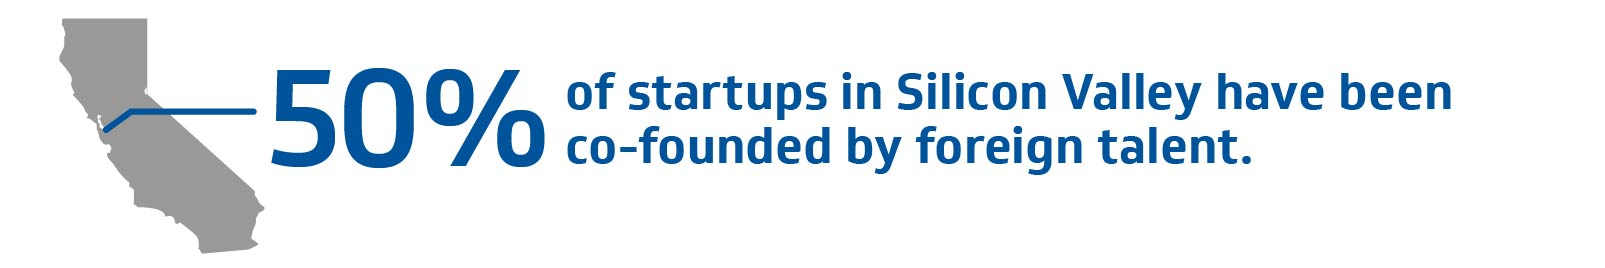 50% of start-ups in Silicon Valley have been co-founded by foreign talent